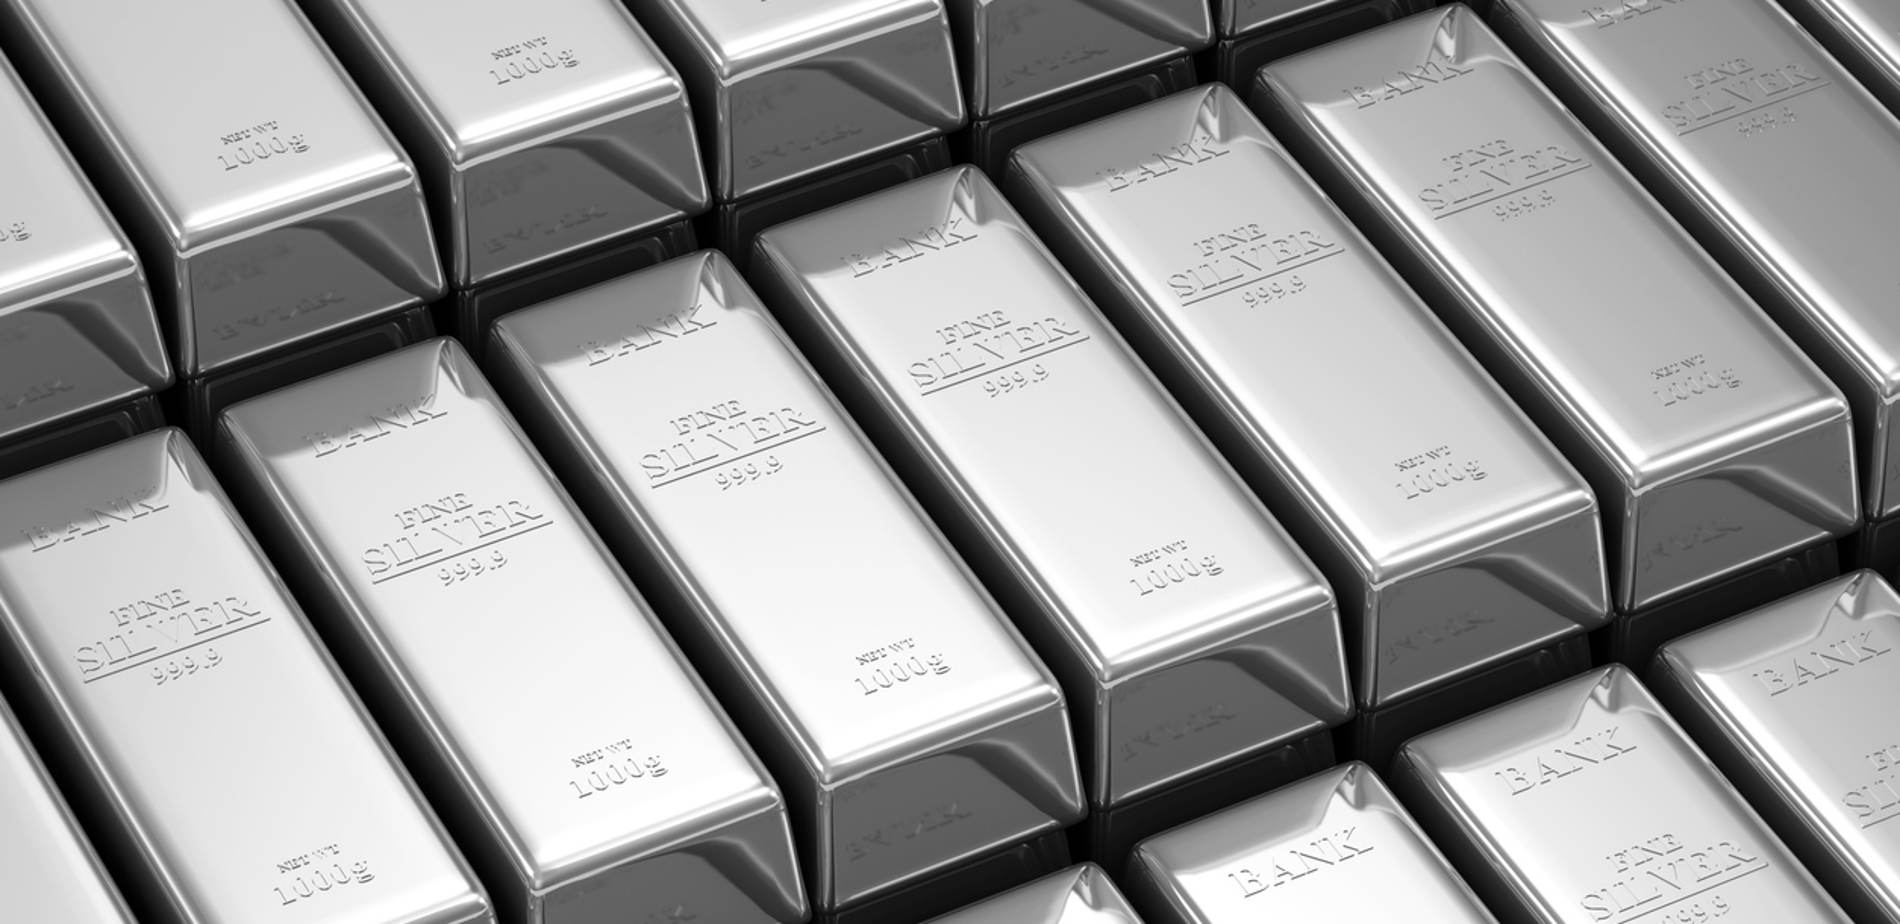 Silver Prices In 2017 This Chart Shows Silver Prices Could Hit 100